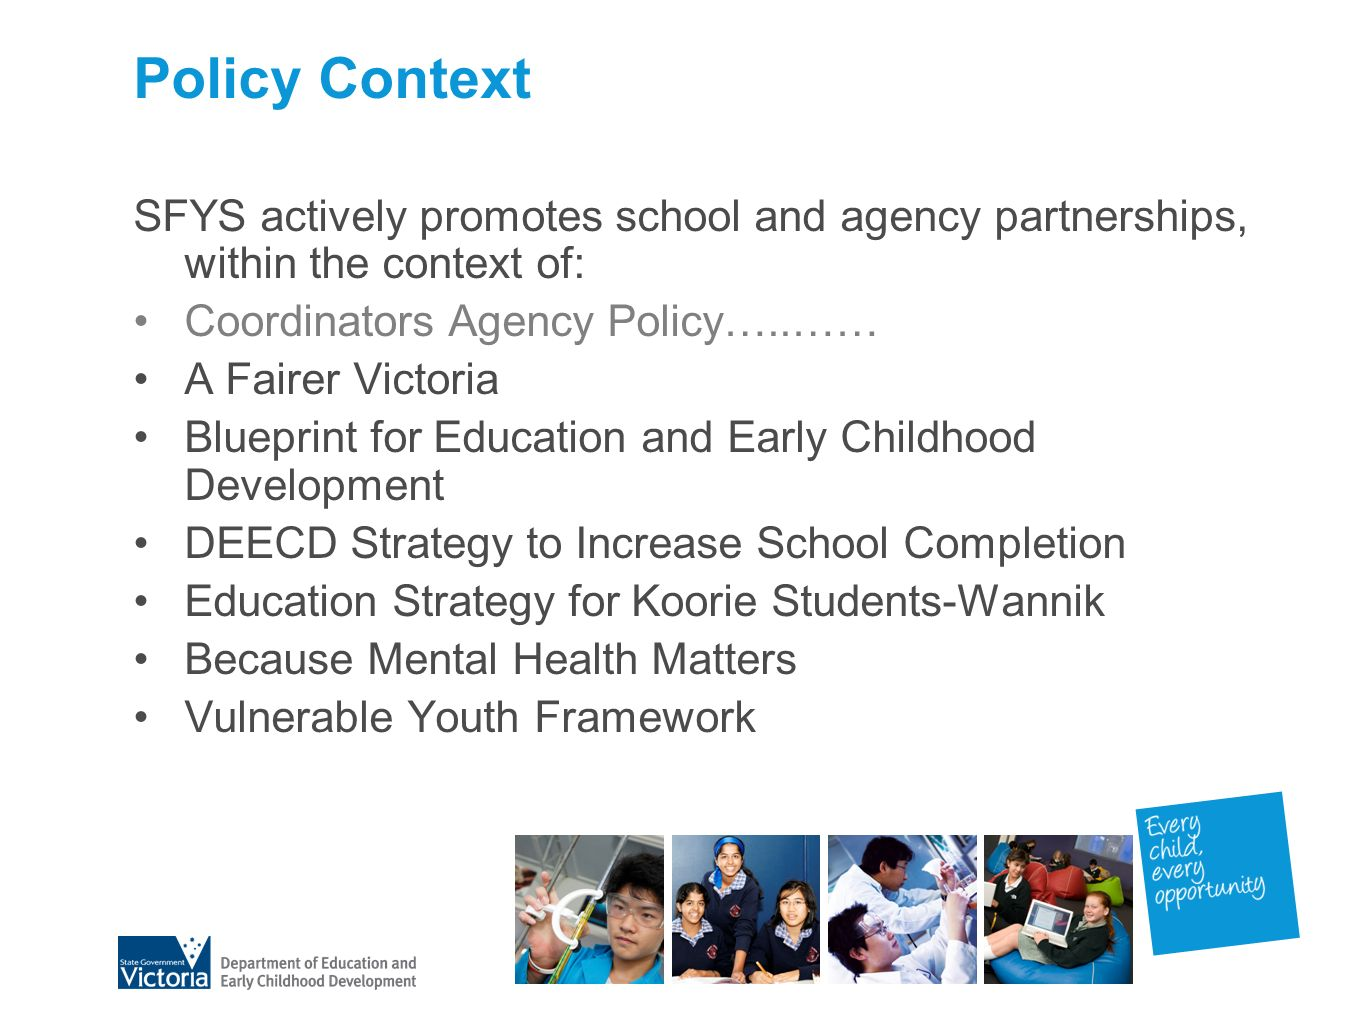 School focused youth services strengthening links between schools a fairer victoria blueprint for education and early childhood development deecd strategy to increase school completion malvernweather Image collections